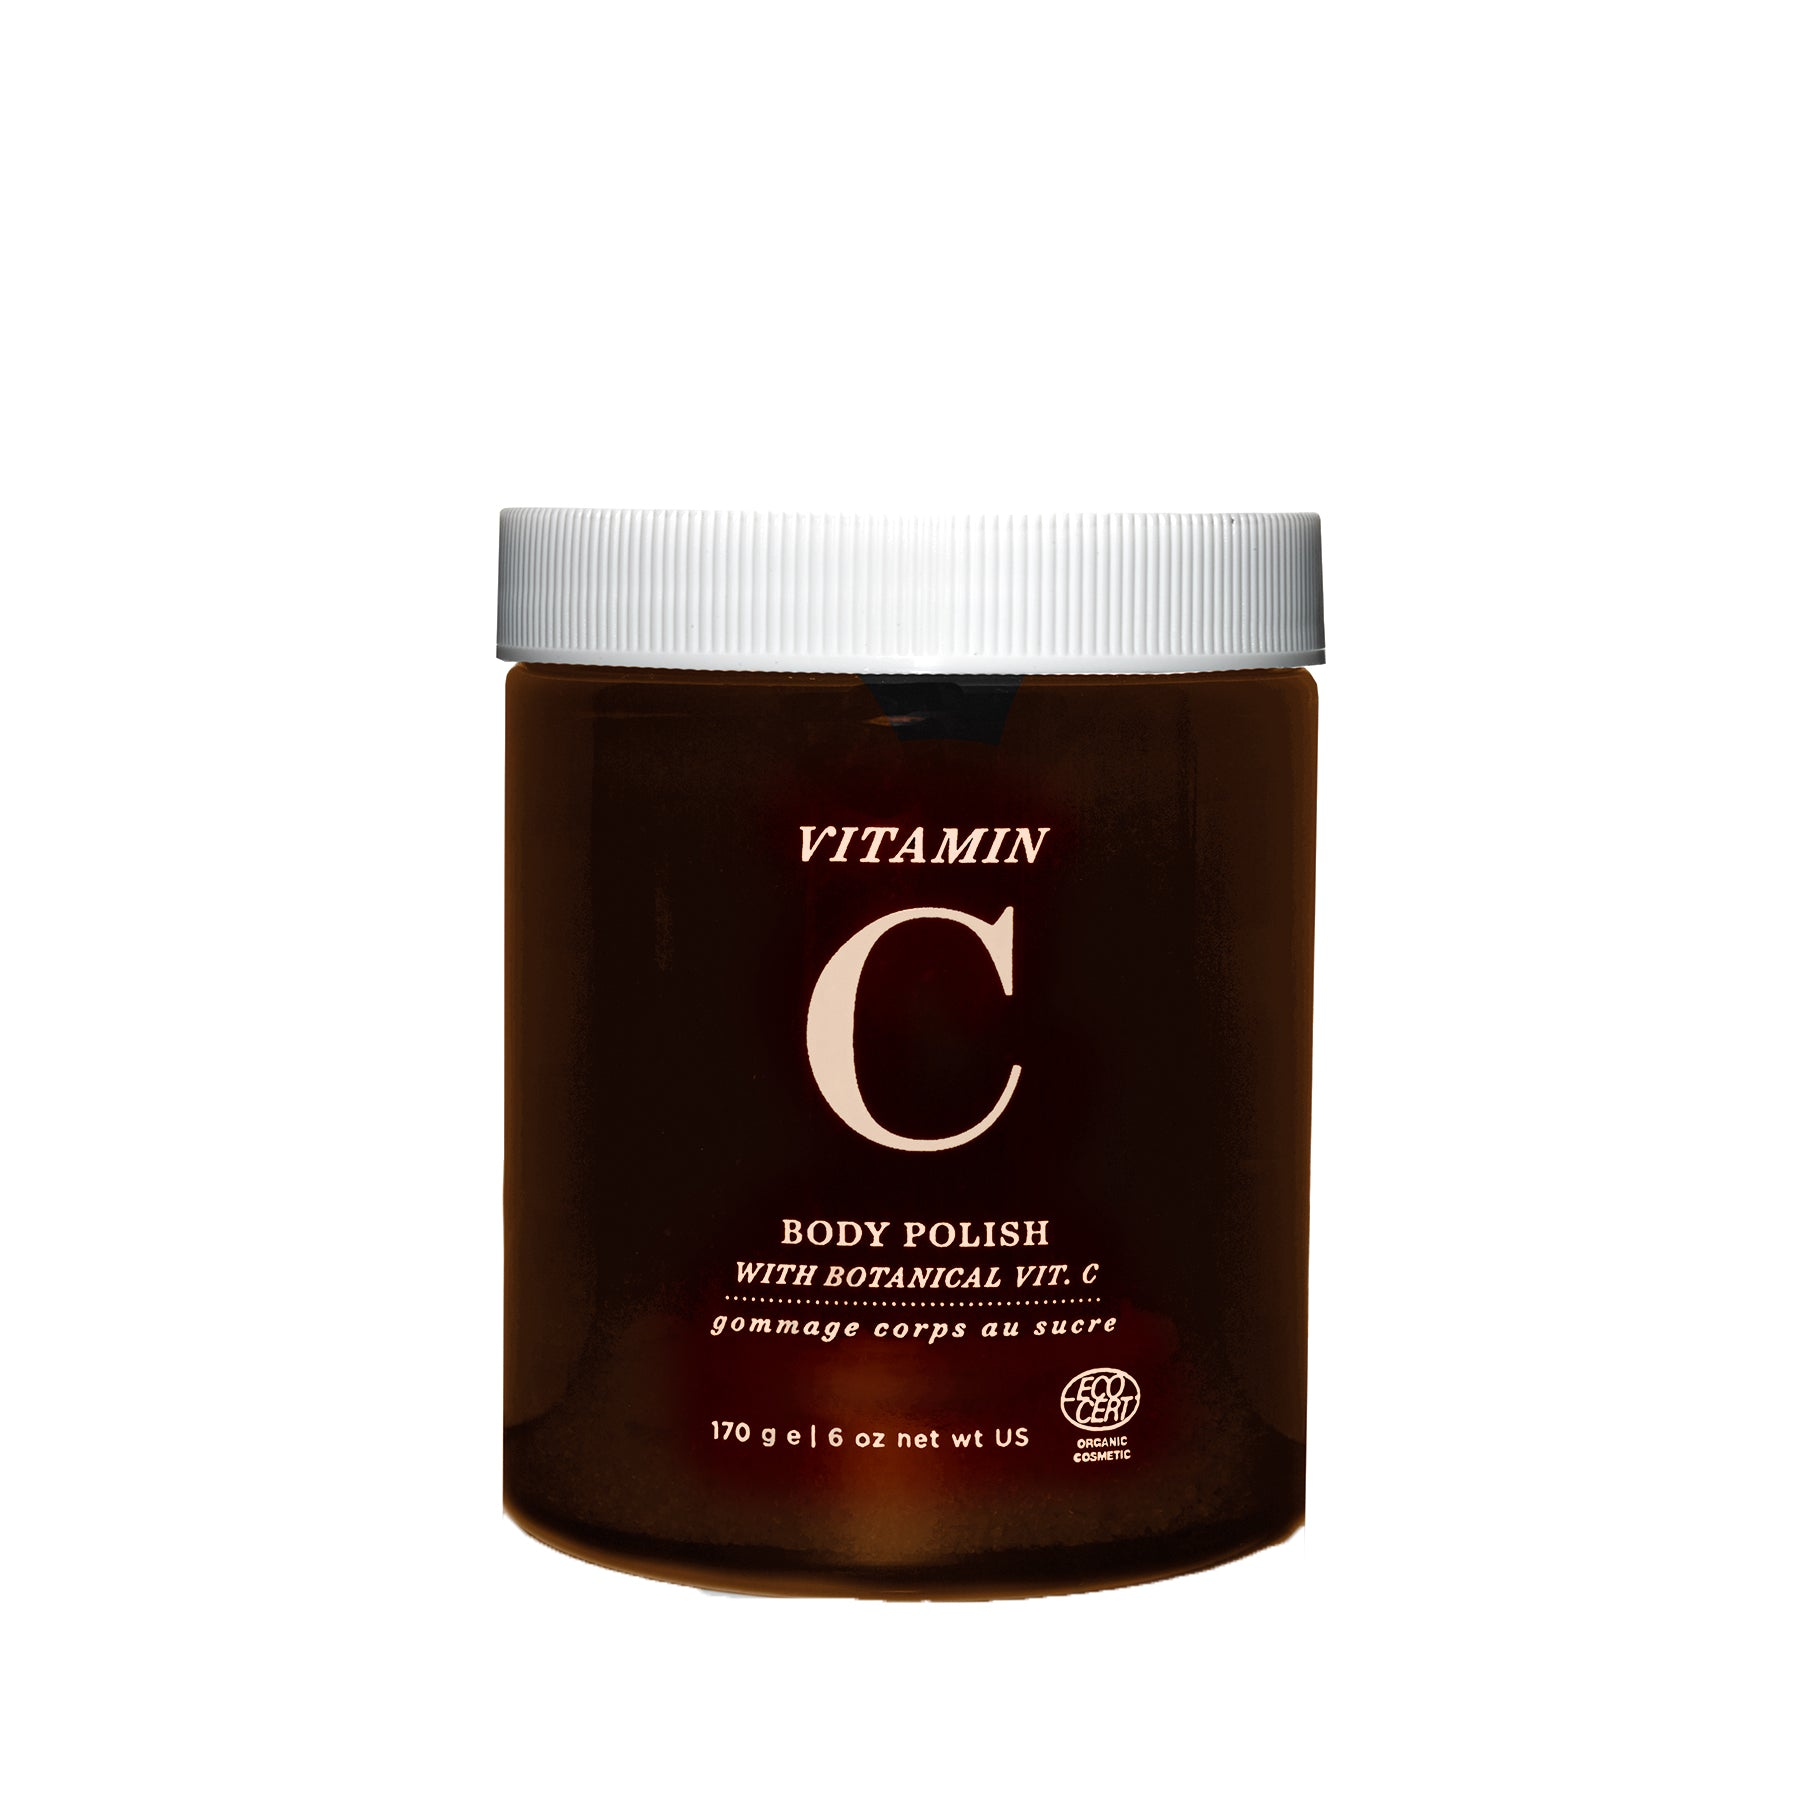 Botanical C Body Polish